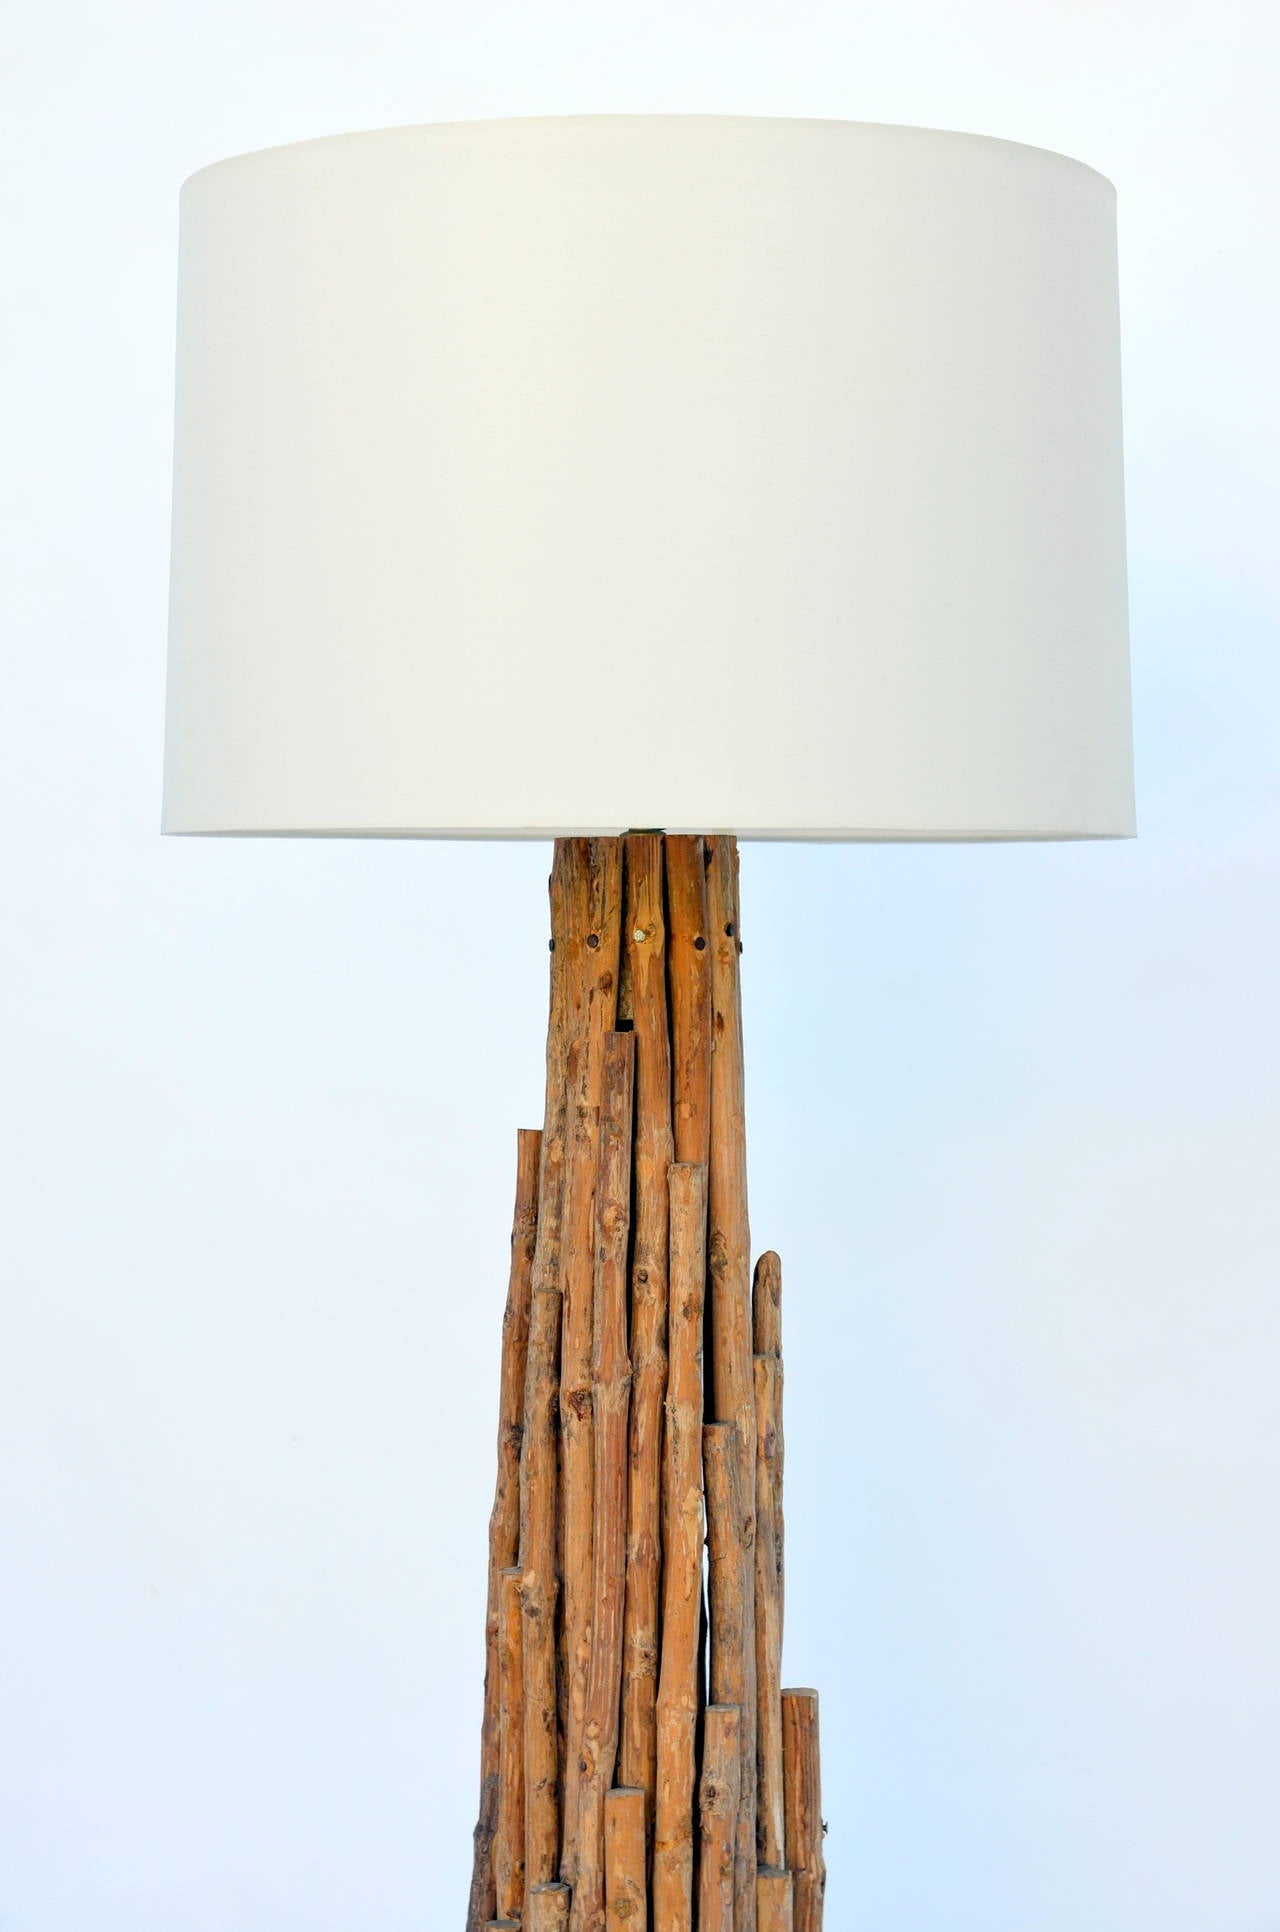 18 Inch Drum Shade Full Size Of Lamps8 Inch Euro Fitter